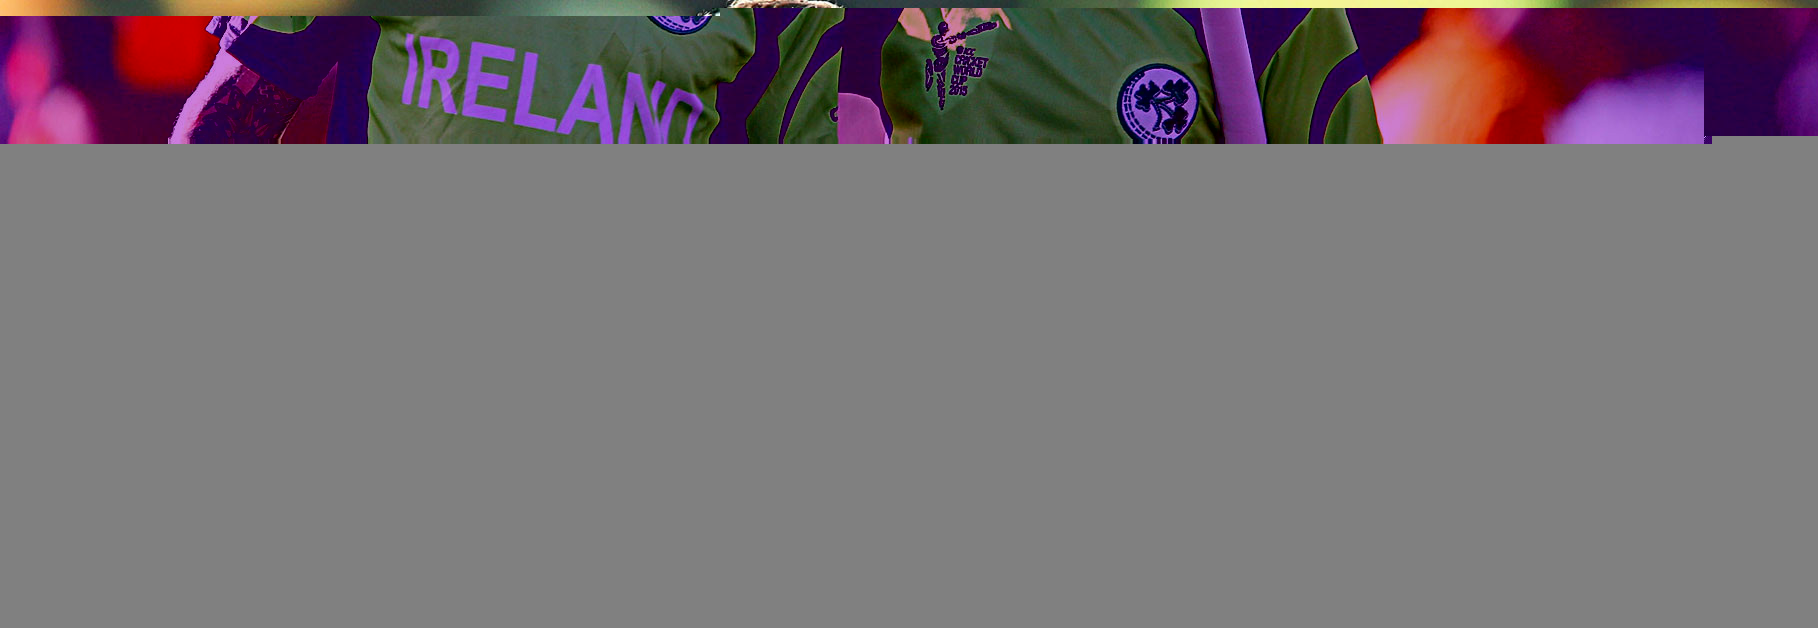 Cricket Ireland – world class